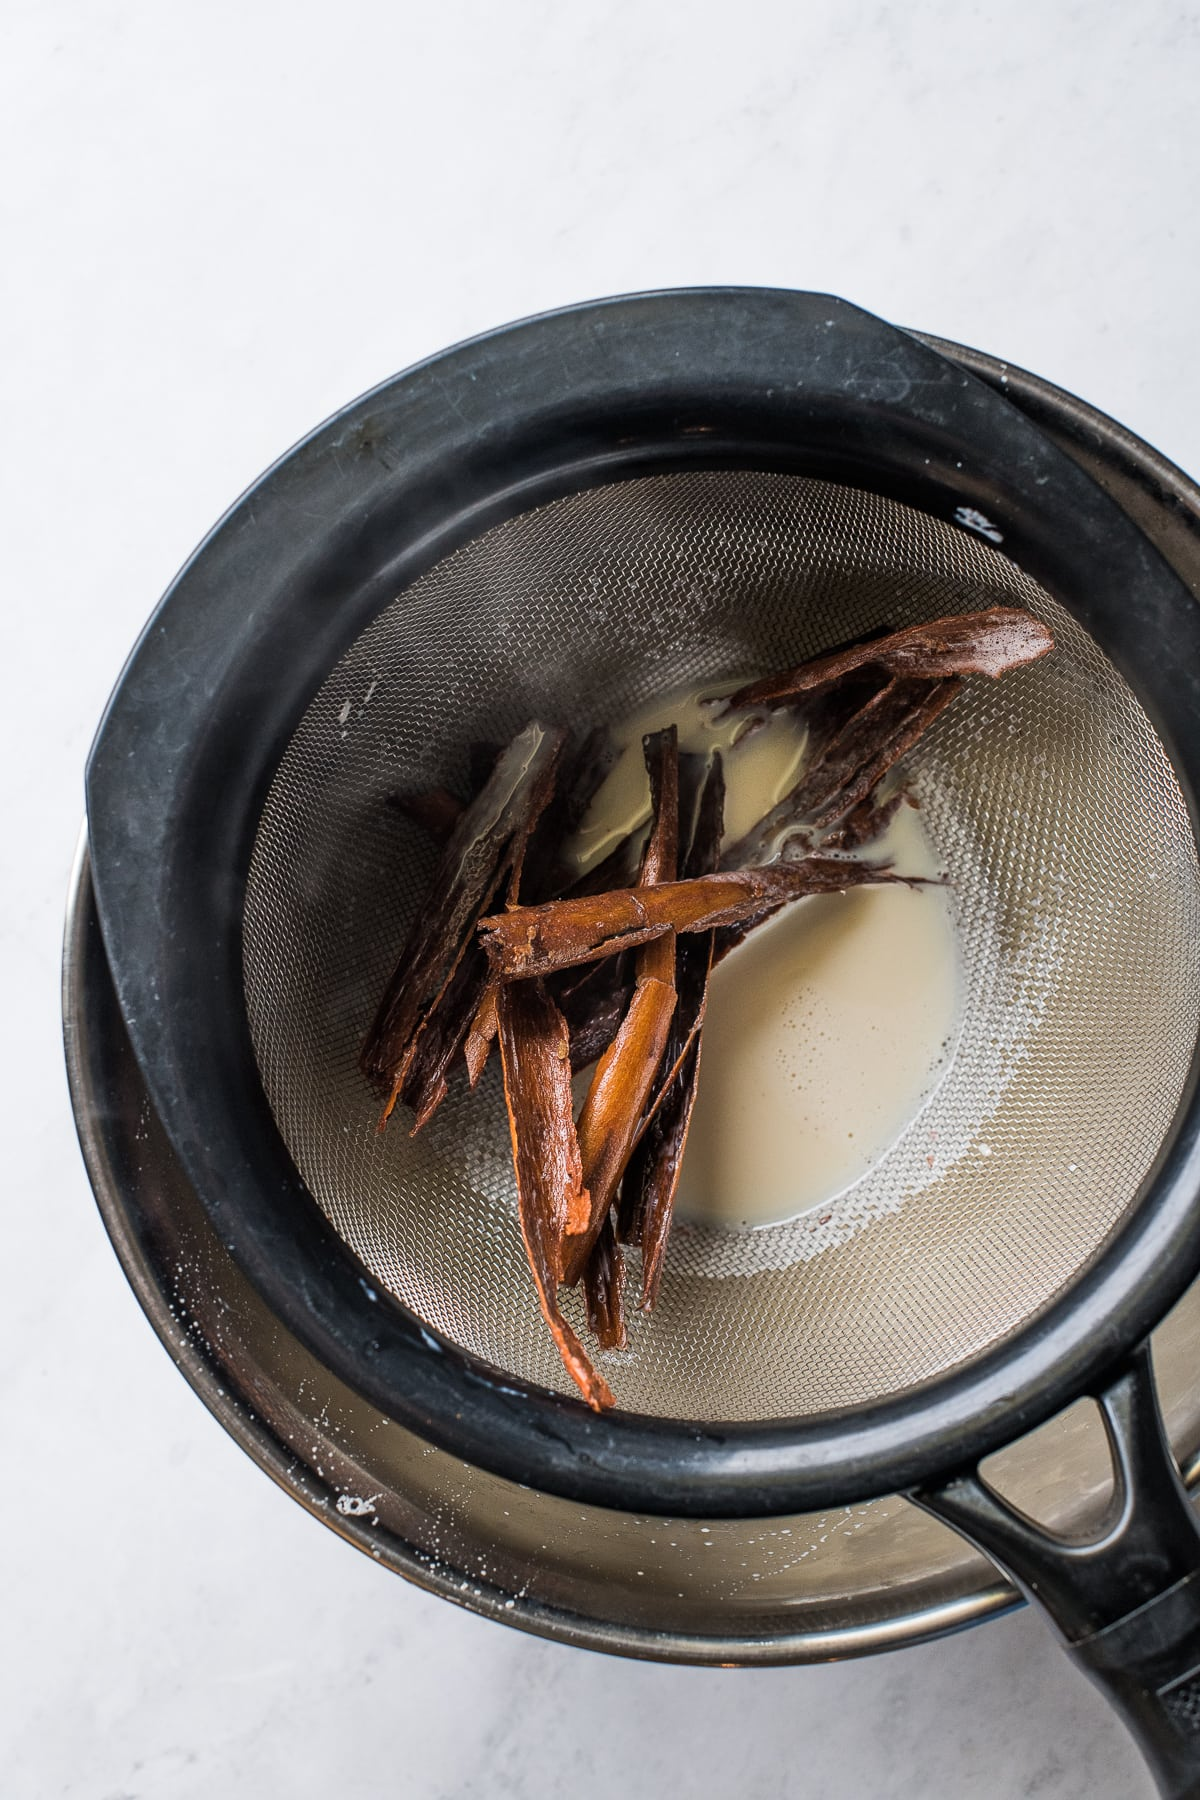 Cinnamon stick pieces in a strainer for making atole.